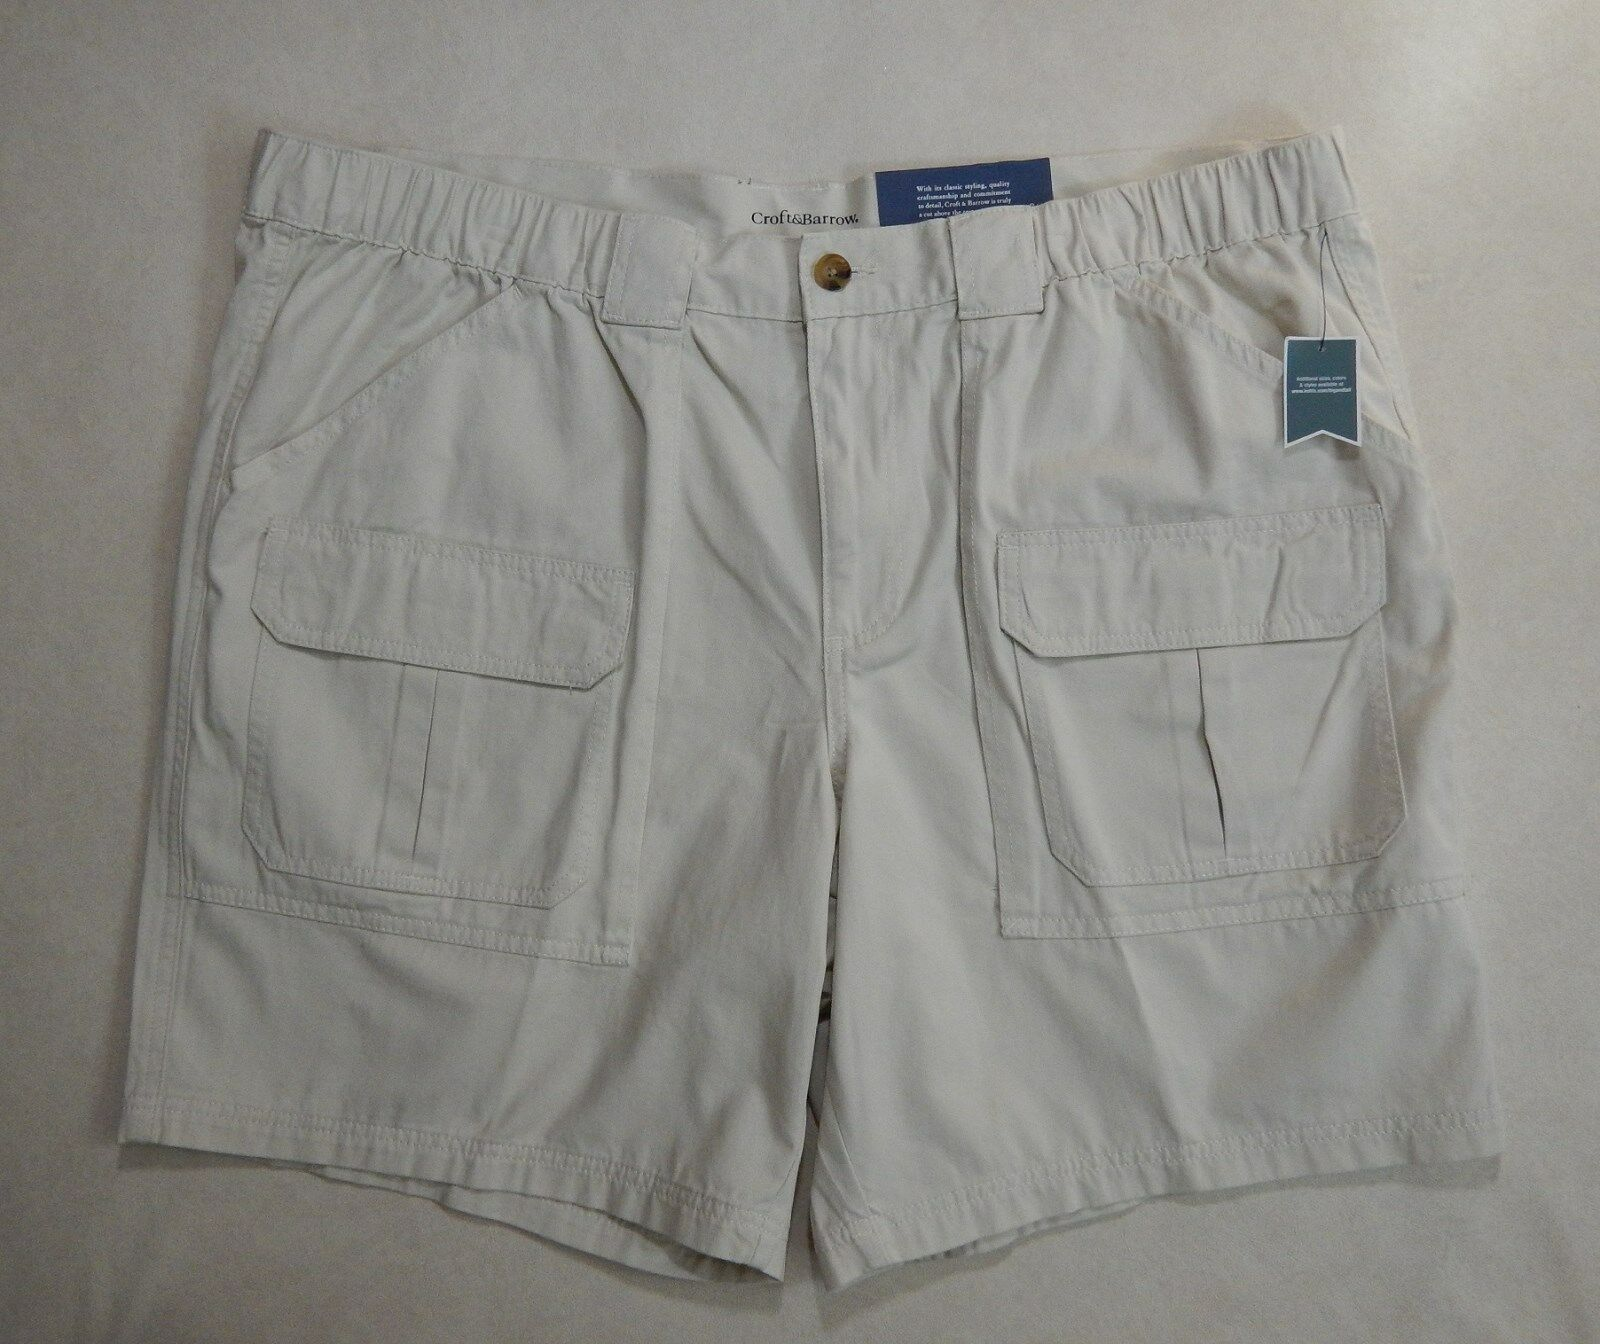 NEW Croft /& Barrow Mens Relaxed Side Elastic Shorts Big /& Tall Many Colors 46-52